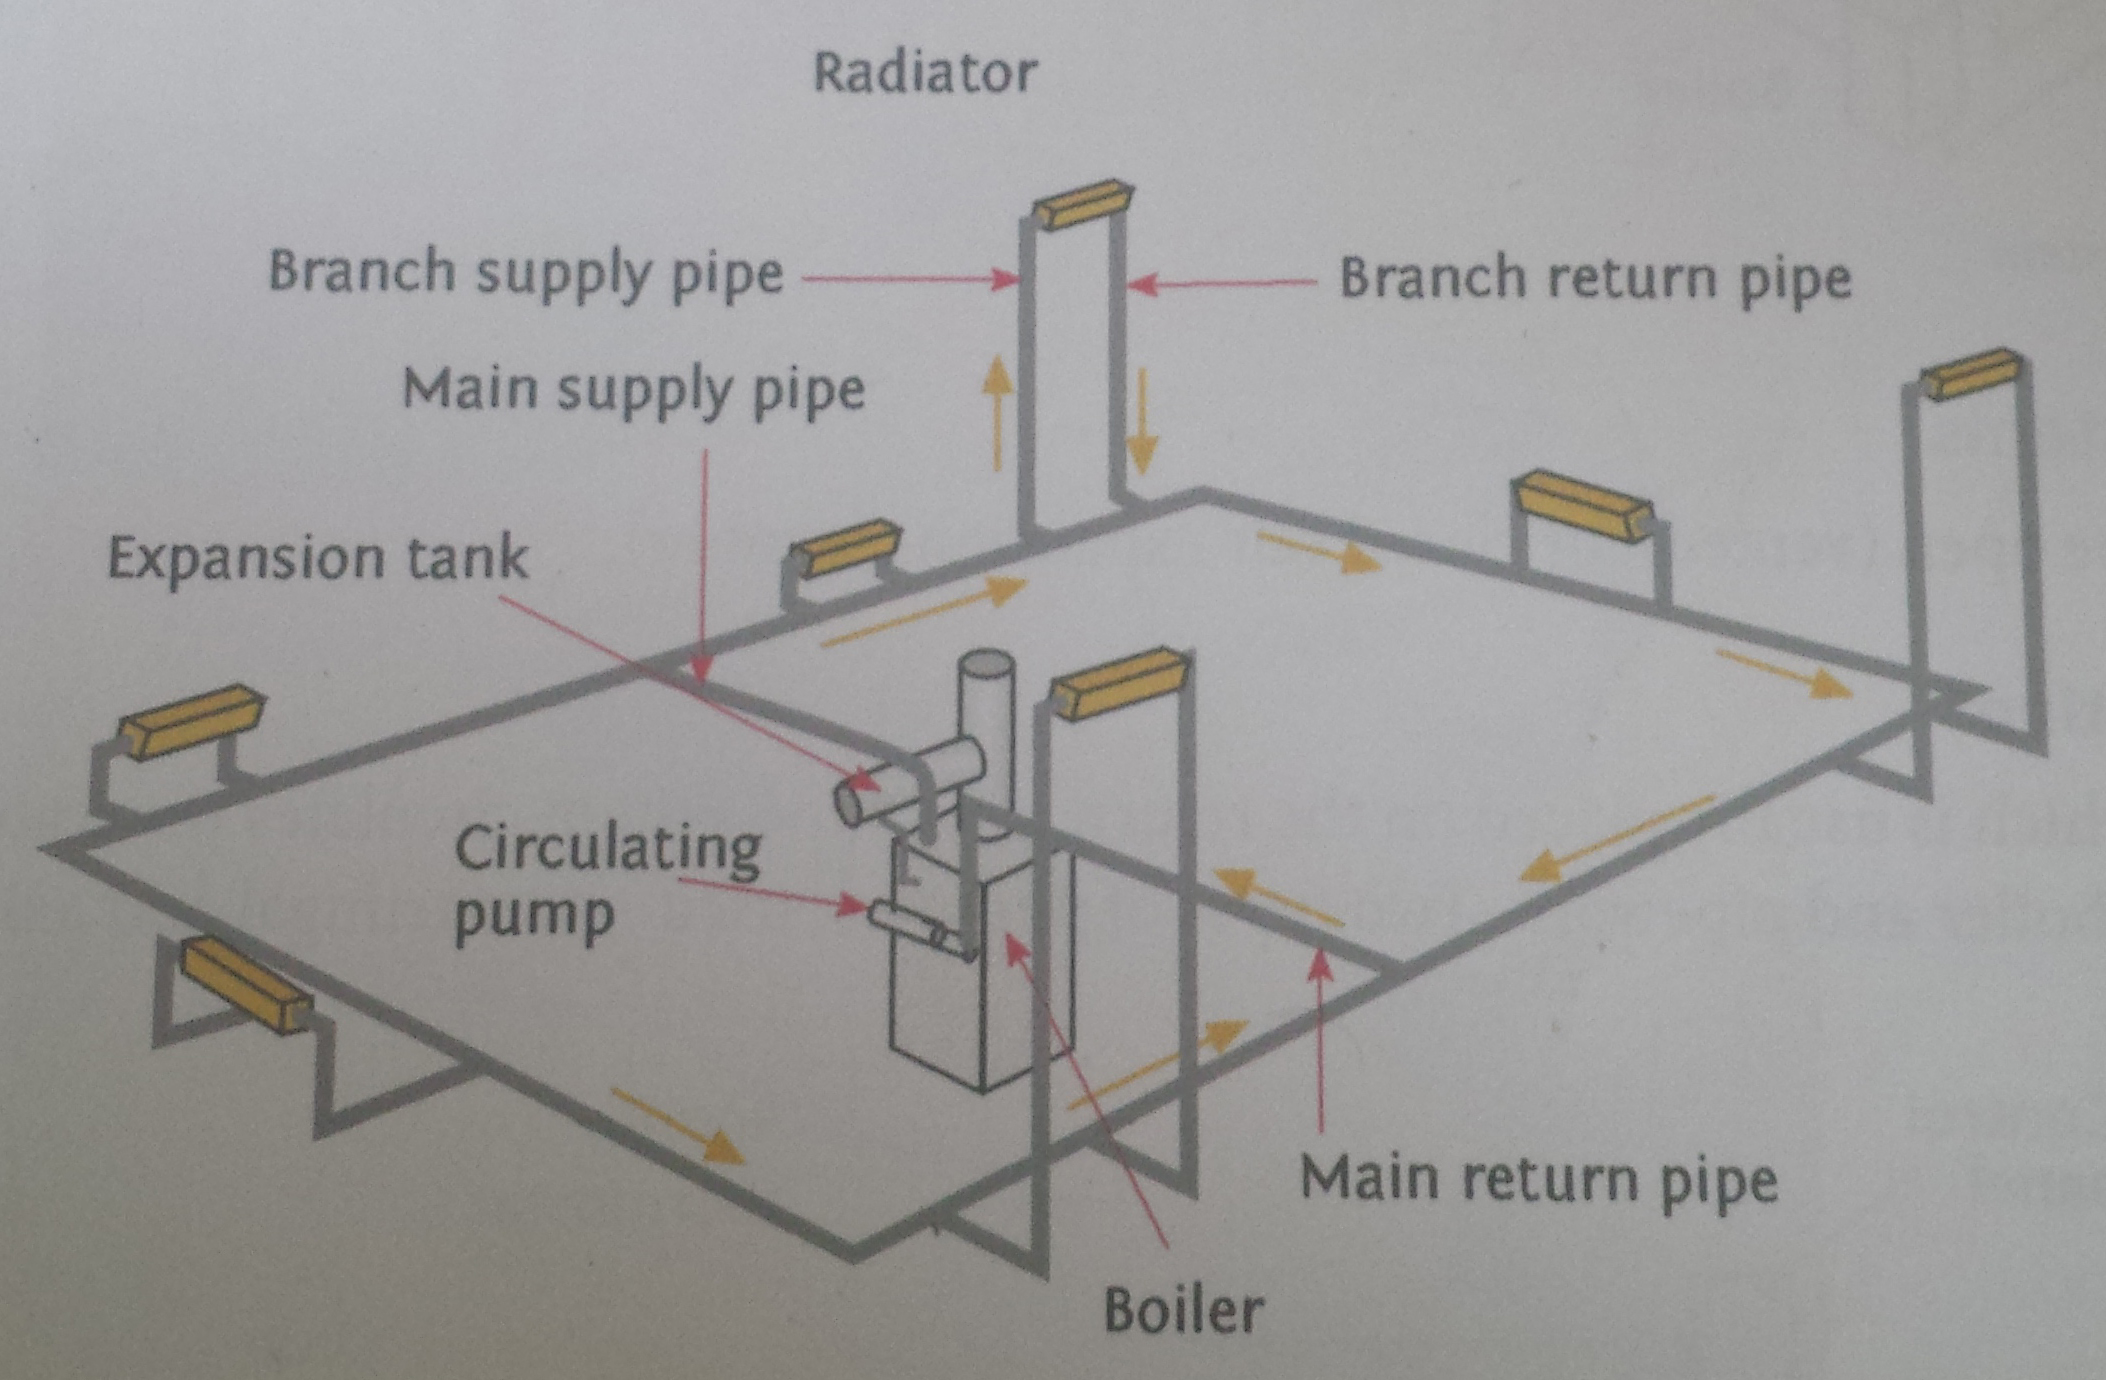 combi boiler central heating system diagram ao smith ust1102 wiring plumbing for guide to